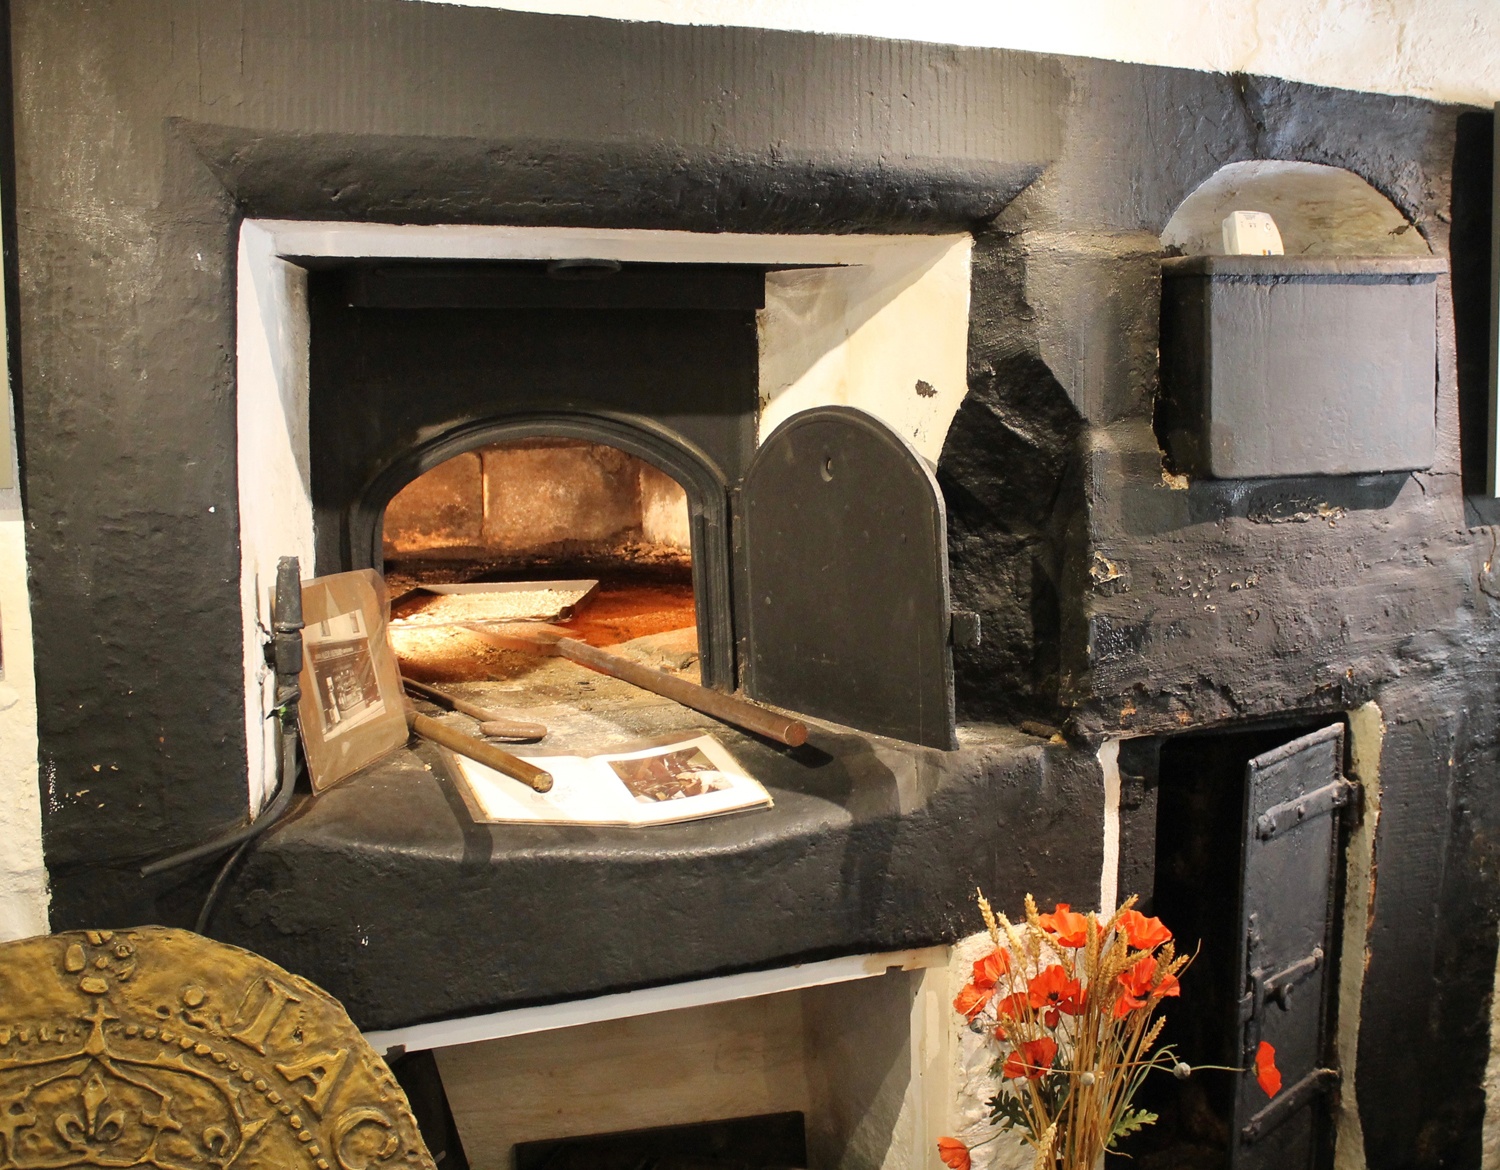 The Bakehouse in Moffat still has its original Scotch oven